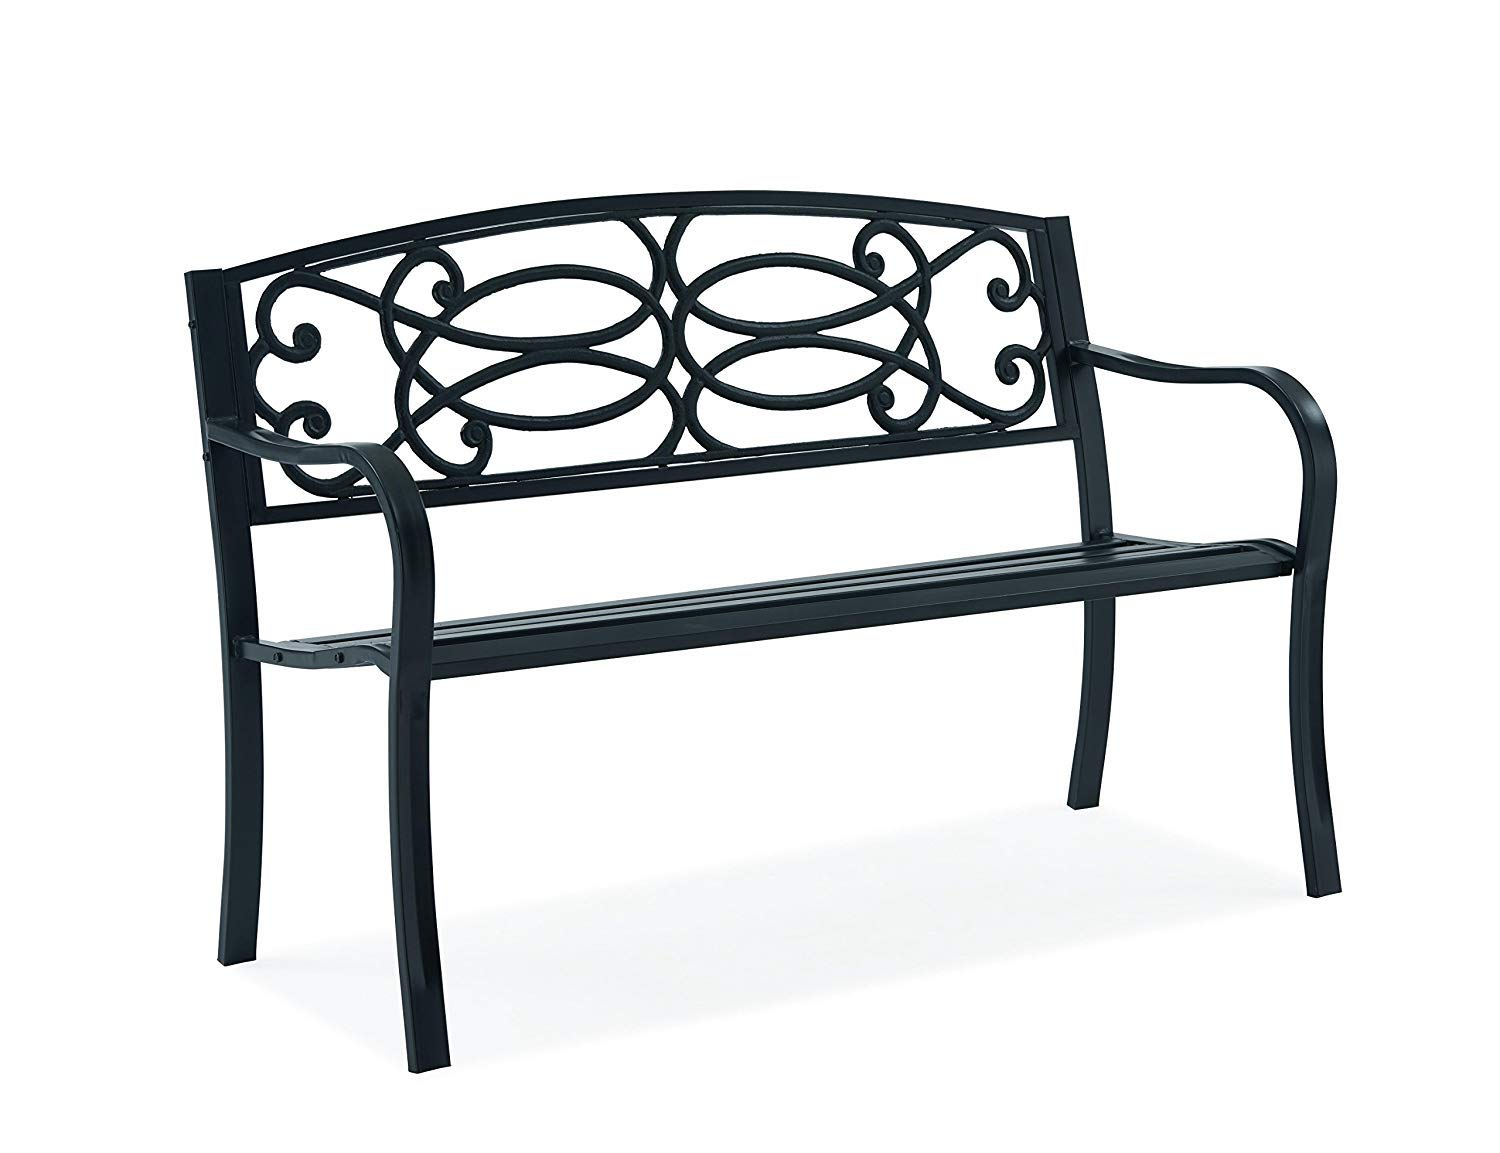 Sensational Fineway Stylish 2 Seater Cast Iron Garden Outdoor Back Park Pabps2019 Chair Design Images Pabps2019Com